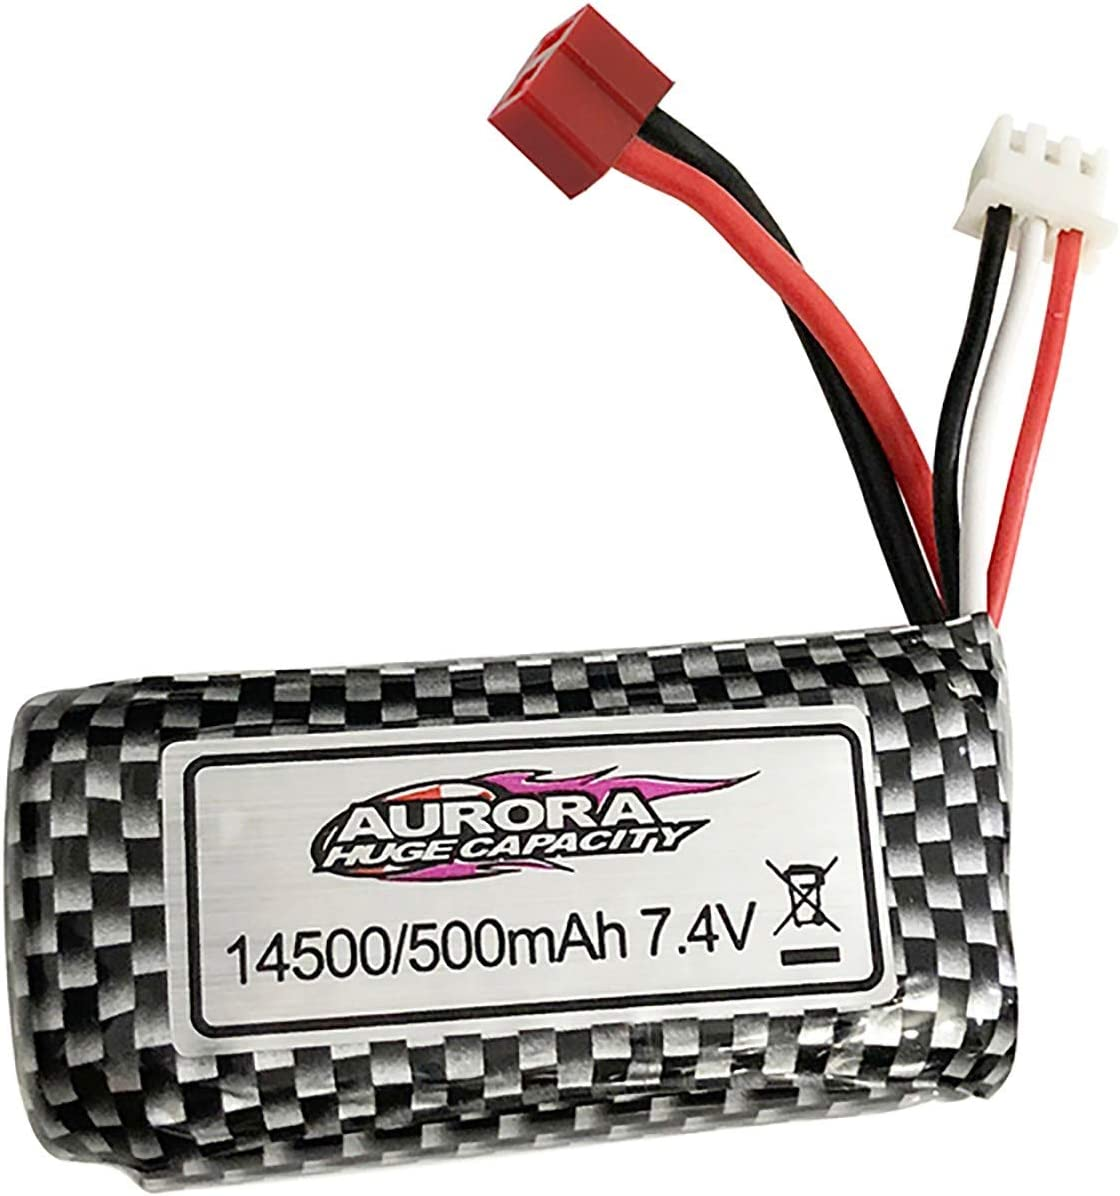 ZSWWang 7.4V 500mAh Lithium Battery 1 16 Limited time cheap sale with Fashion Aurora Compatible